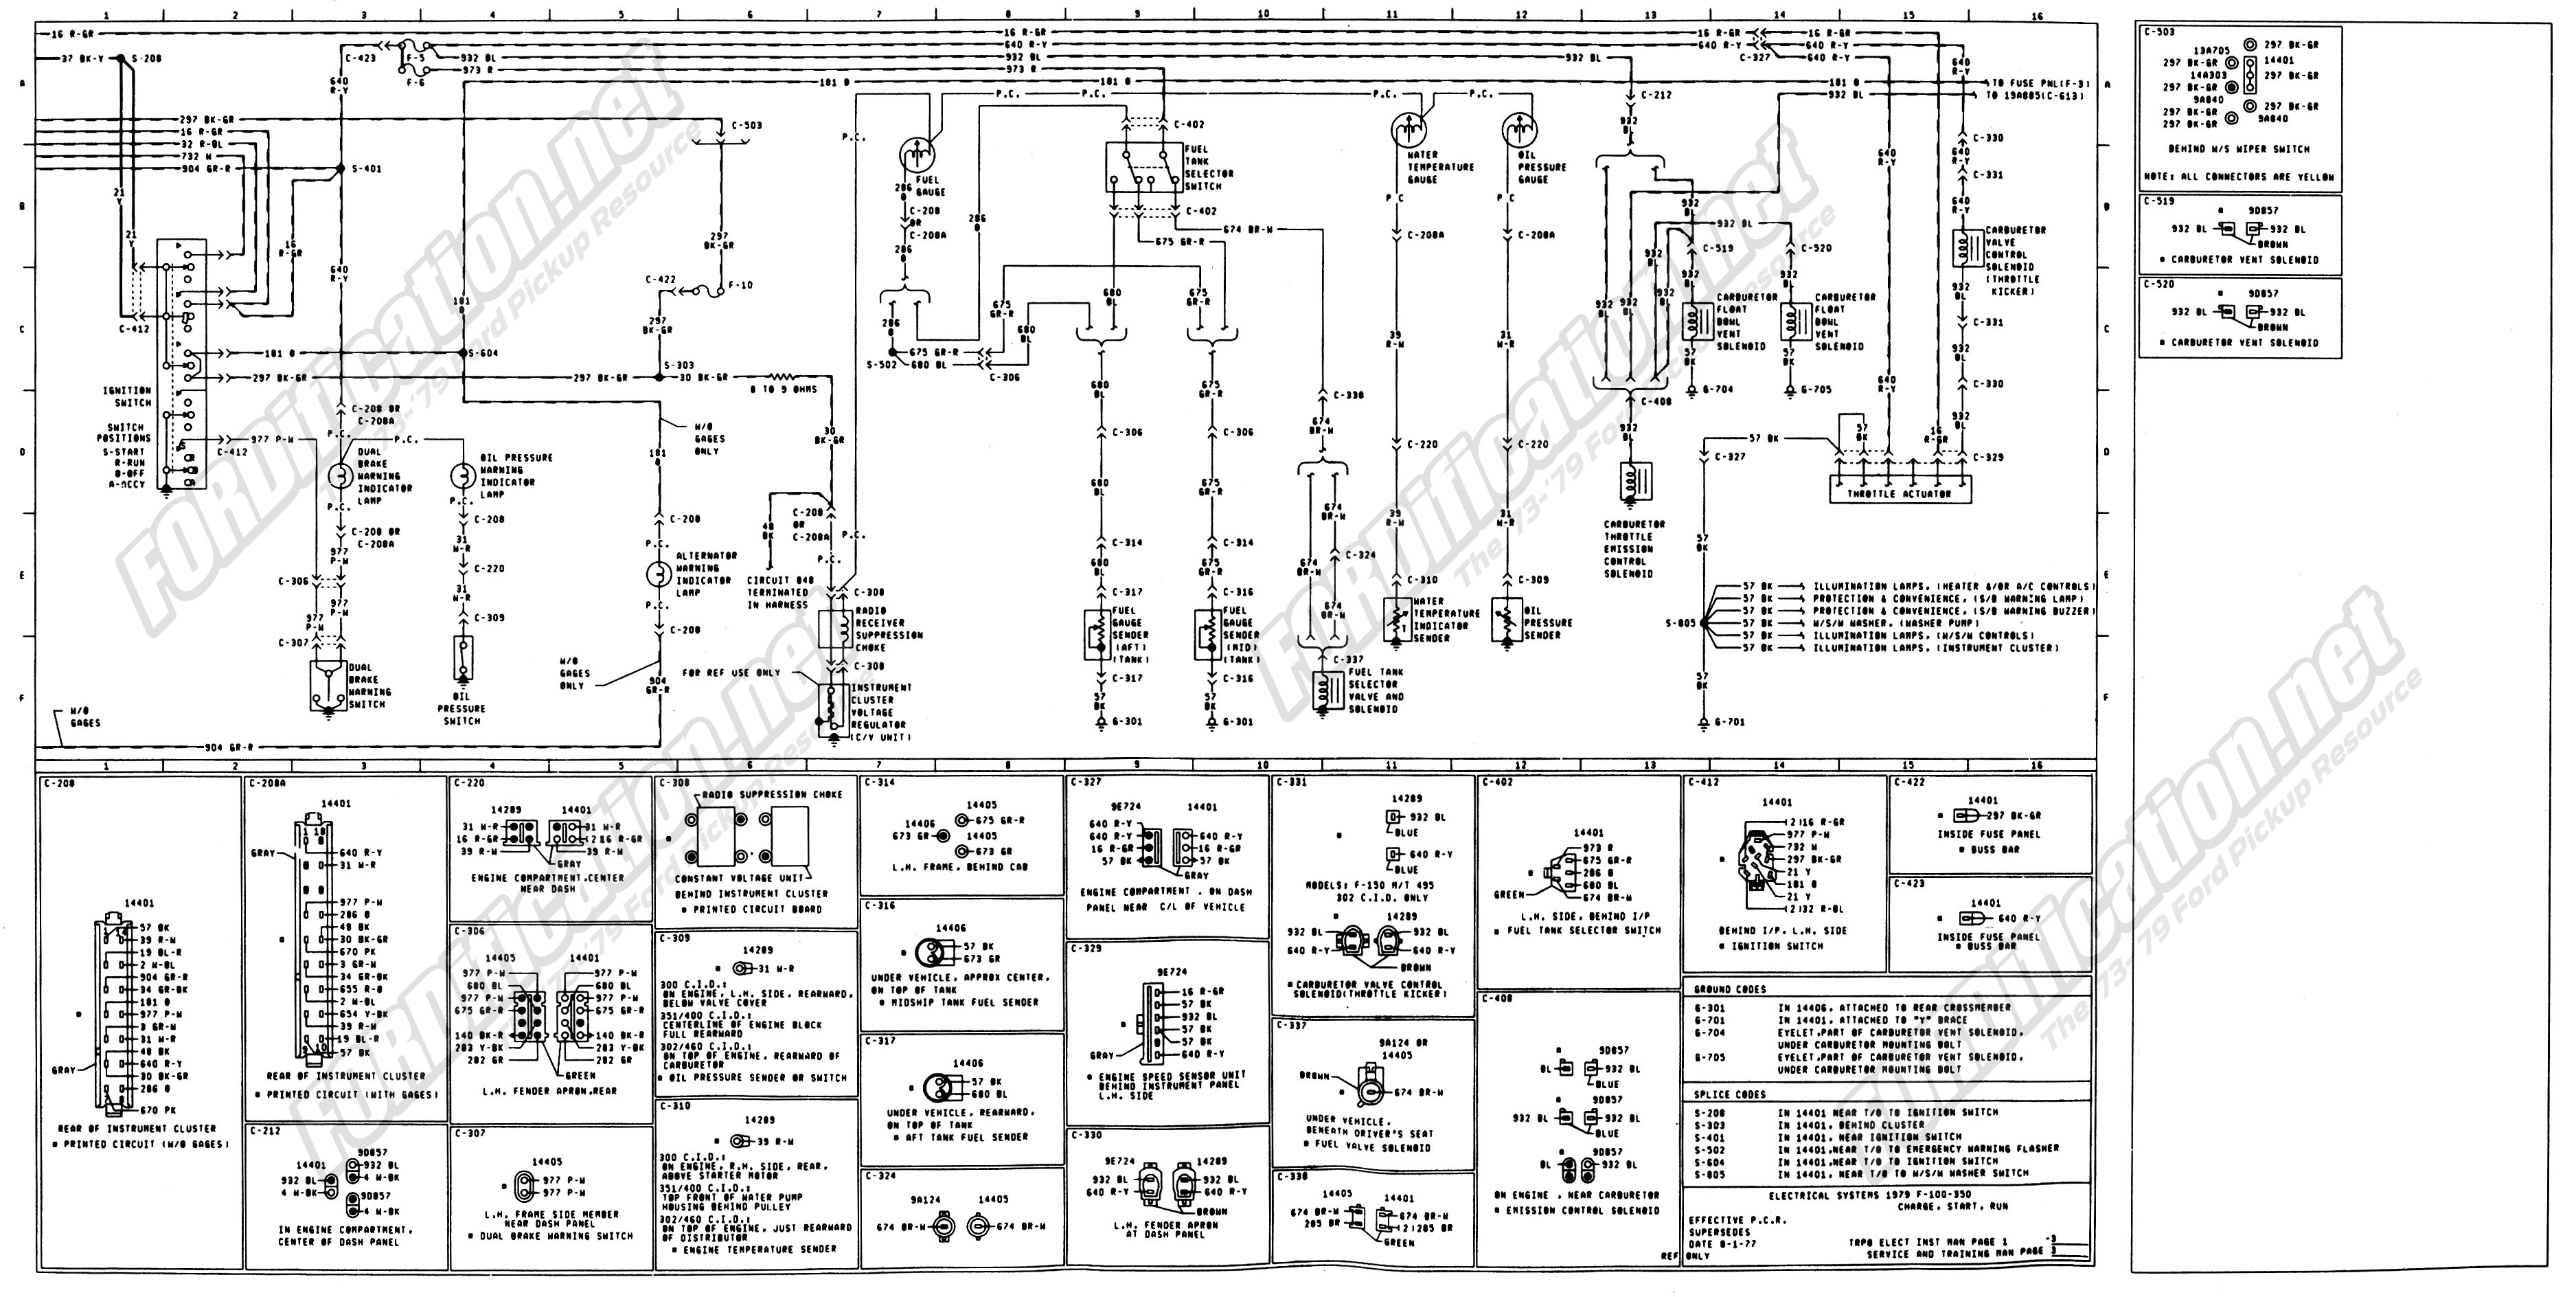 1974 Ford F100 Wiring Diagram Library Easy For Harley Davidson